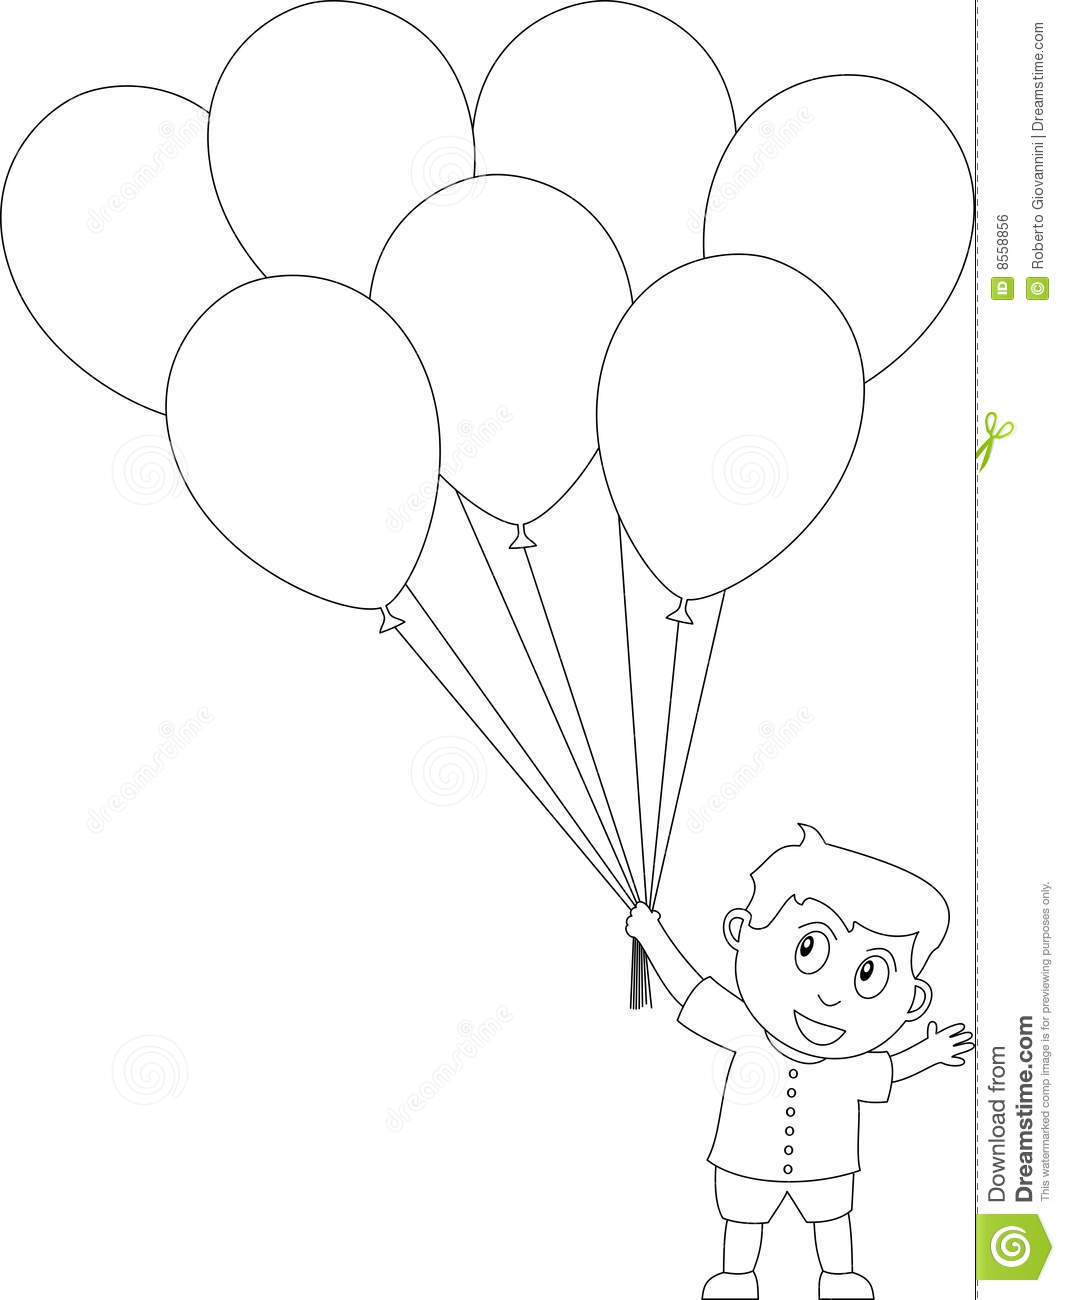 balloons book - Drawing Books For Kids